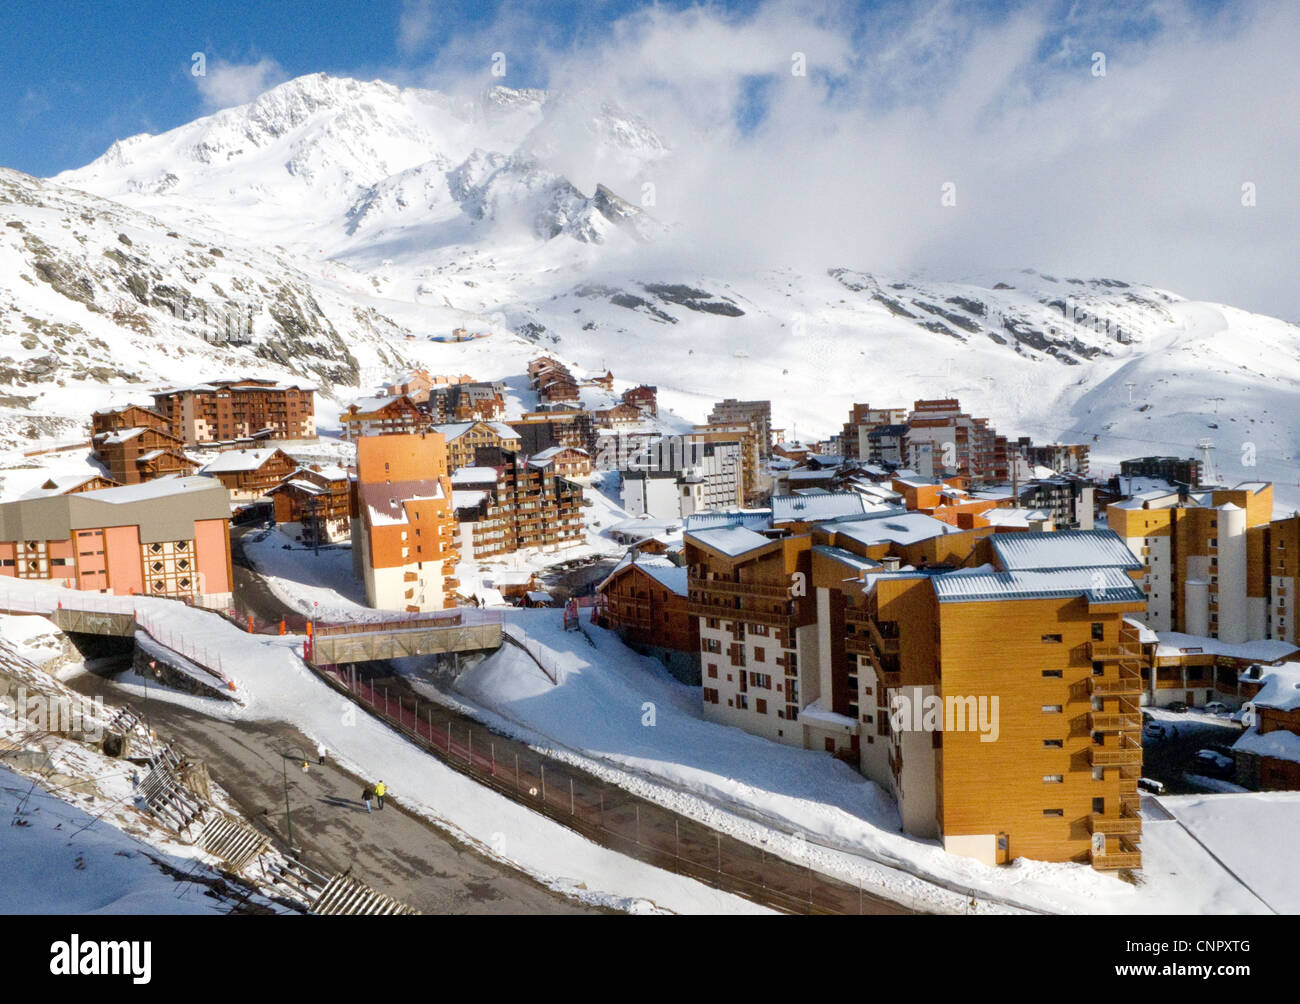 The alpine skiing village of Val Thorens, France Europe - Stock Image